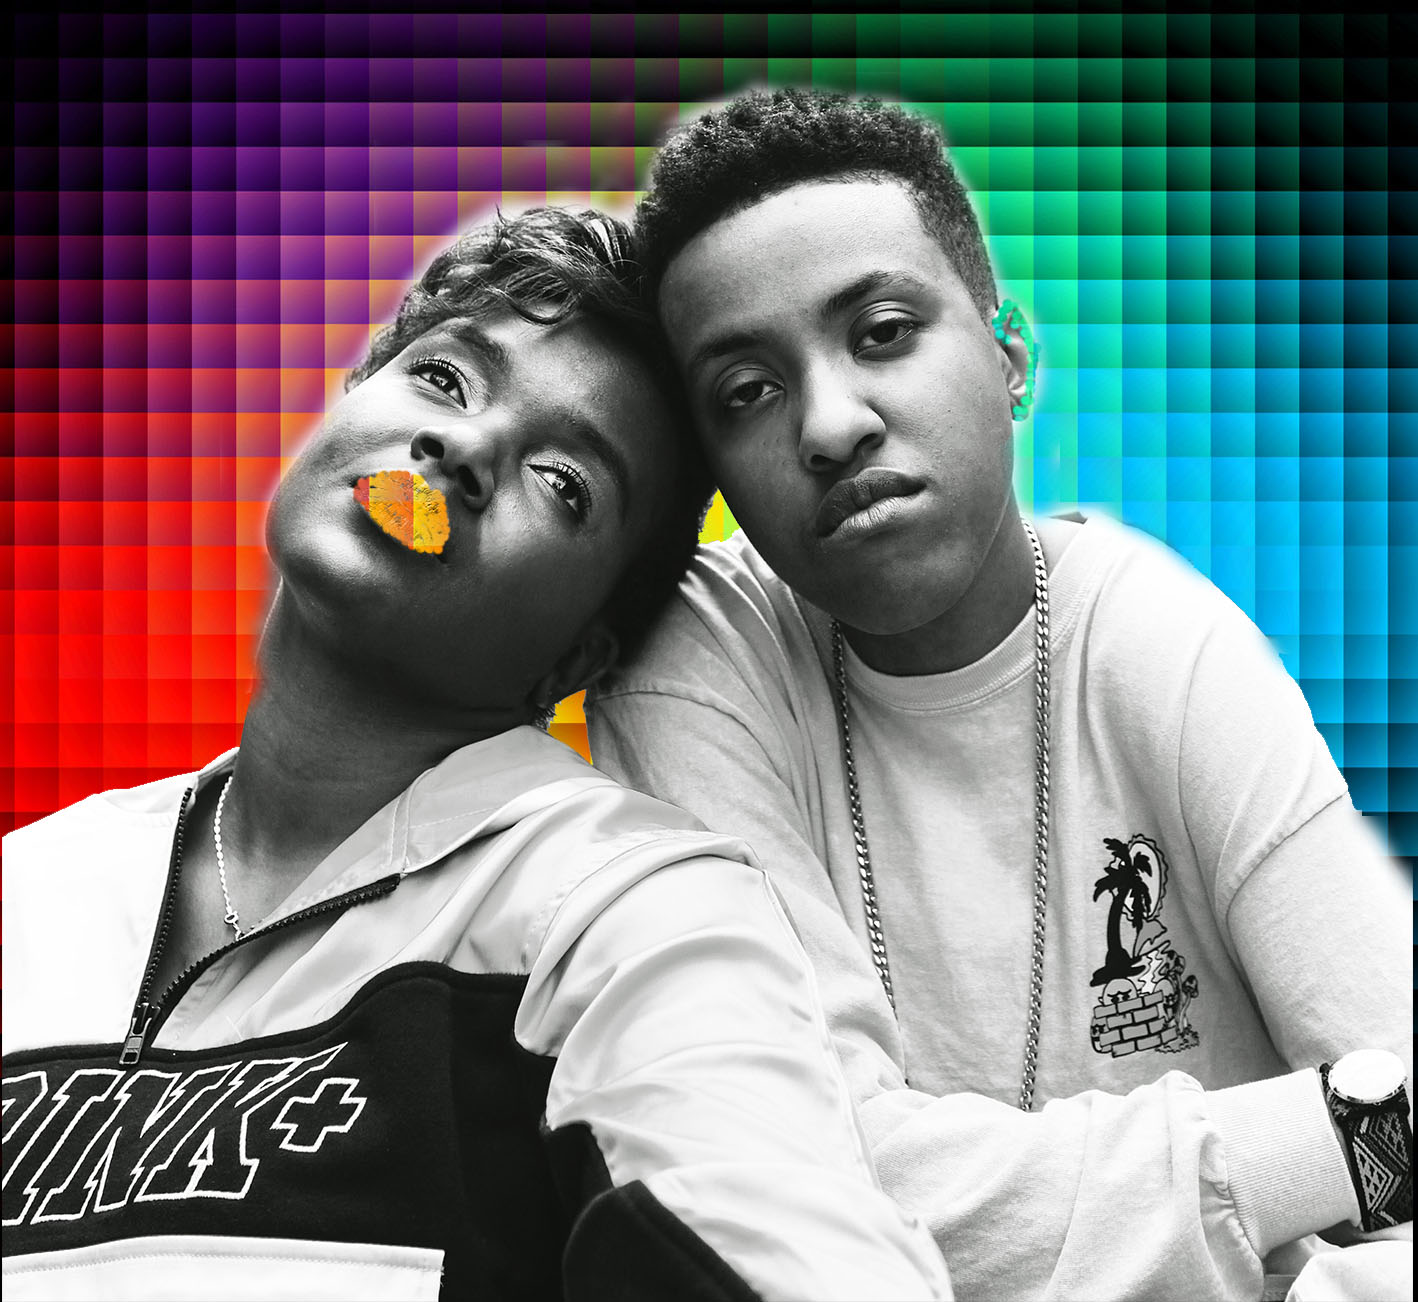 "TRP.P (pronounced ""trippy"") is a Toronto band breaking barriers on the Hip-Hop/R&B scene. Composed of Truss (producer, singer/songwriter) and Phoenix Pagliacci (singer/songwriter), the dynamic duo began their collective artistry in the summer of 2017. In October of the same year, they released their self-titled debut EP. Since then, they have been unstoppable.  TRP.P has made their mark in Toronto as a group to know. In 2018, NOW Magazine listed them among the list of Must See acts performing at Toronto Pride. Dubbing themselves ""The Pete Rock & C.L. Smooth of R&B"", Truss and Phoenix have an undeniable chemistry that is both relatable and infectious. The two have performed across North America, opening for heavy hitters like Oakland songstress Kehlani and Baltimore soulbird Mumu Fresh. Their new EP, 2TRP.P, is set for release in September 2019."